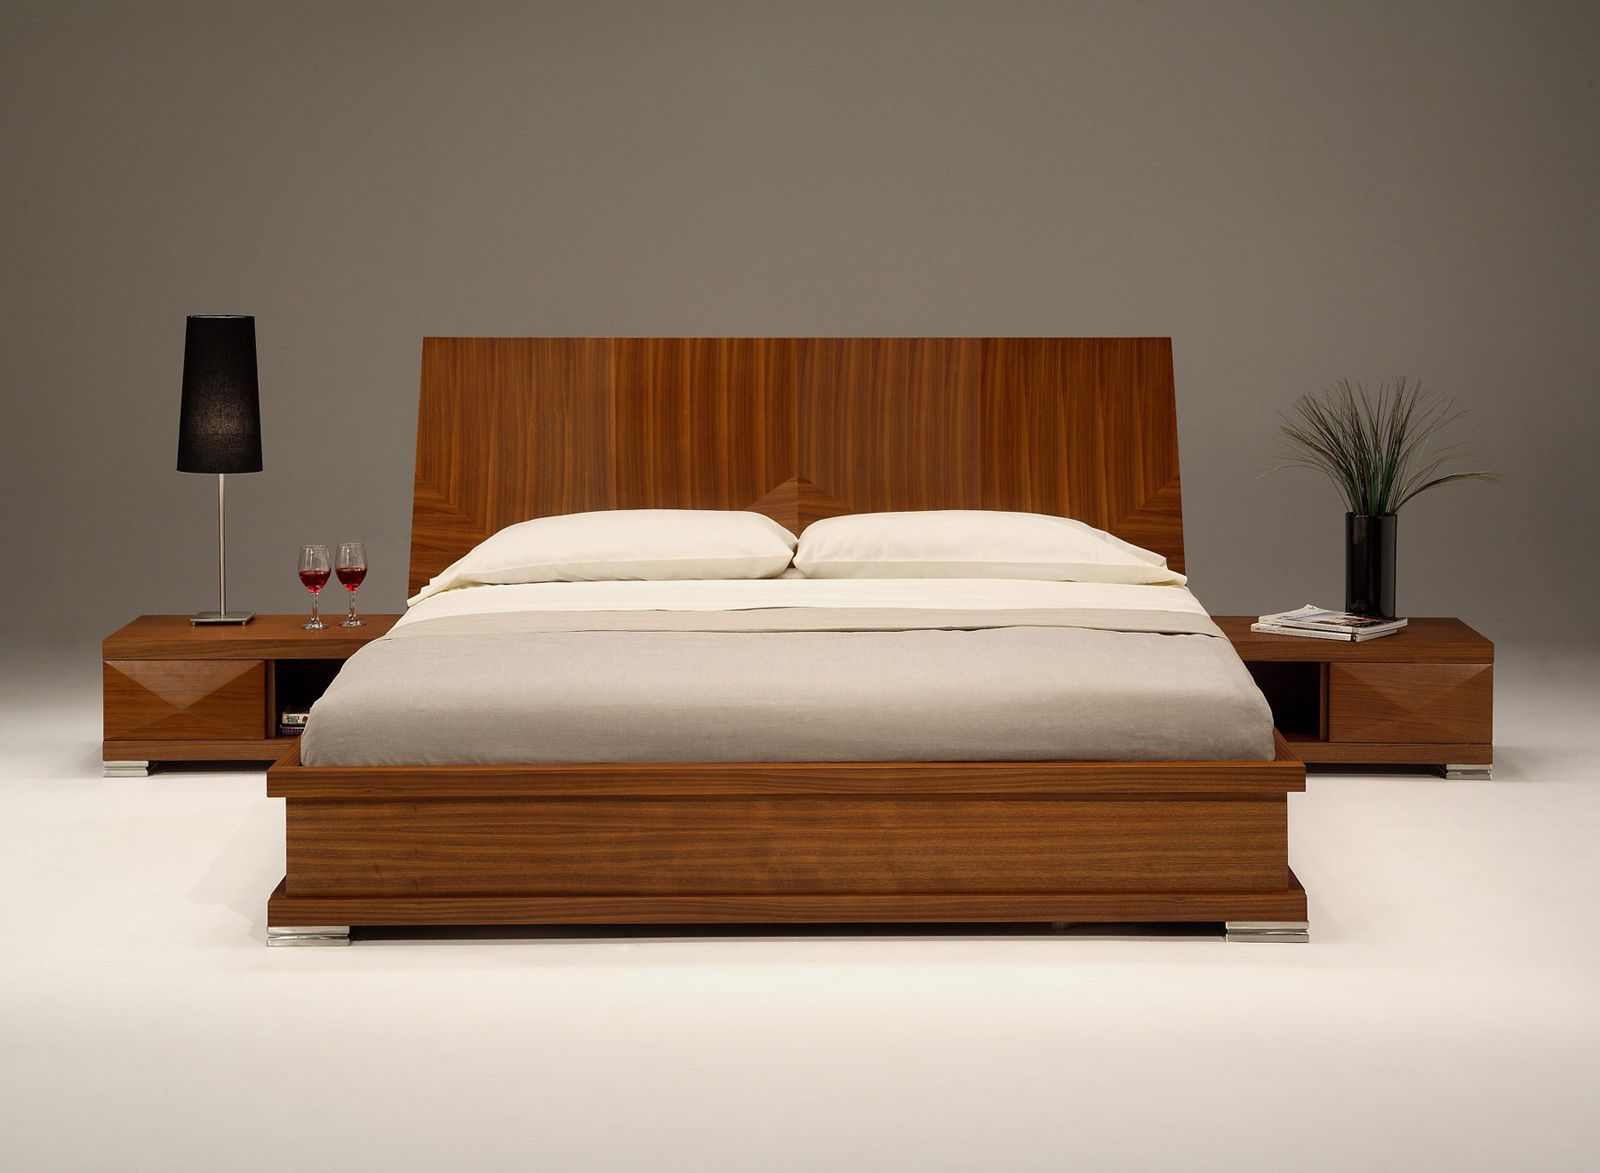 Bedroom design tips with modern bedroom furniture for Modern bed images